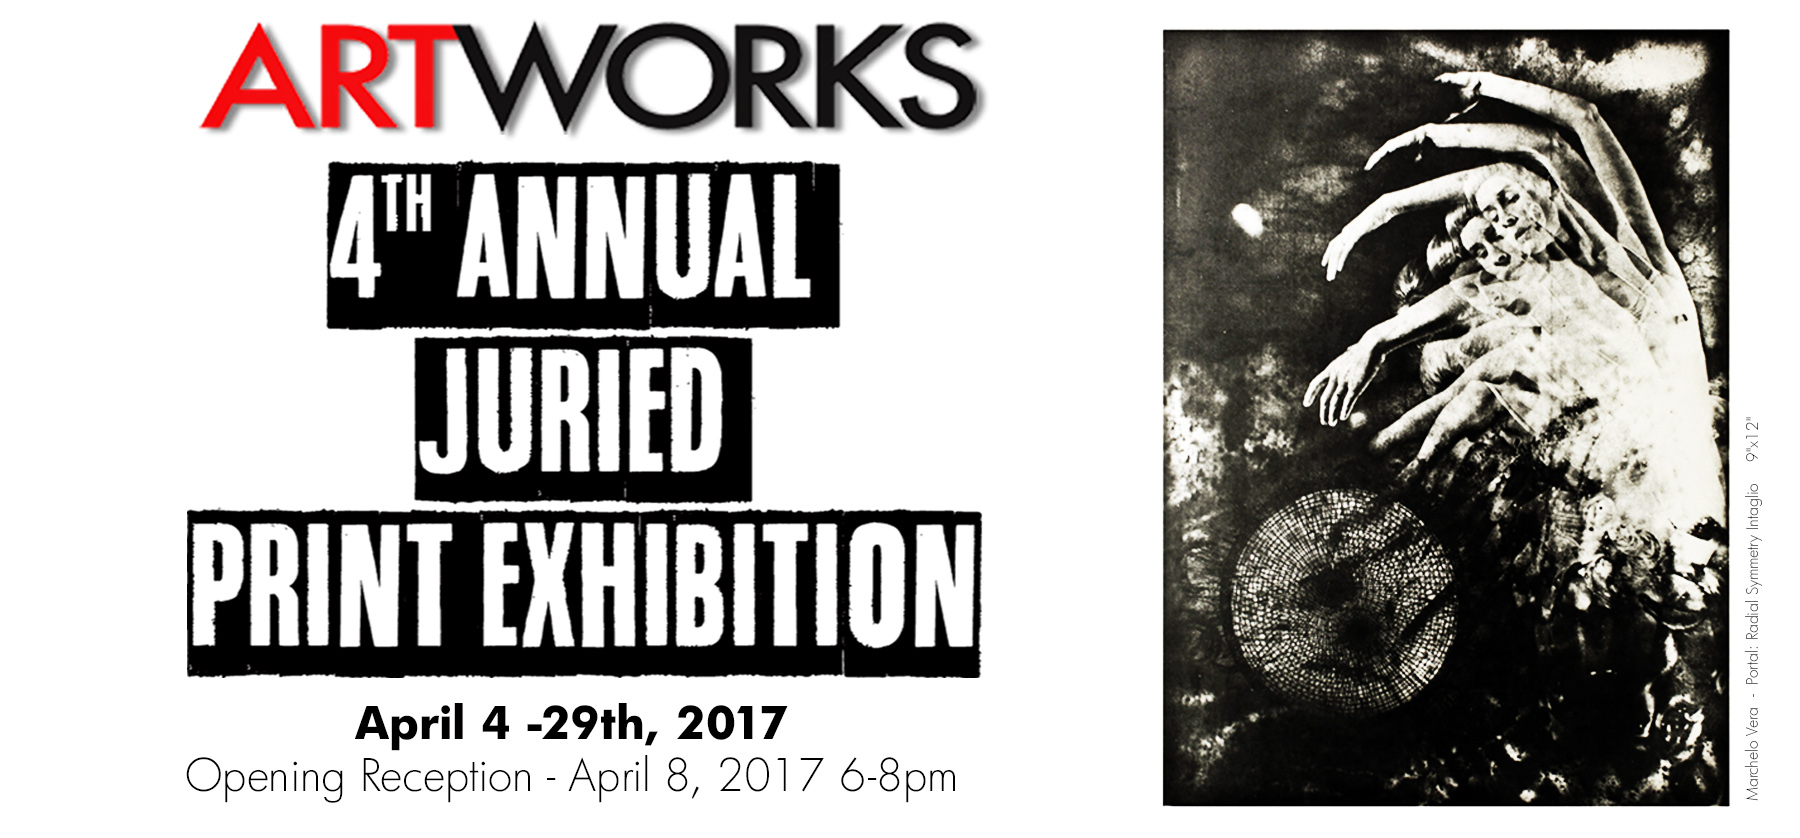 4th Annual Juried Print Exhibition